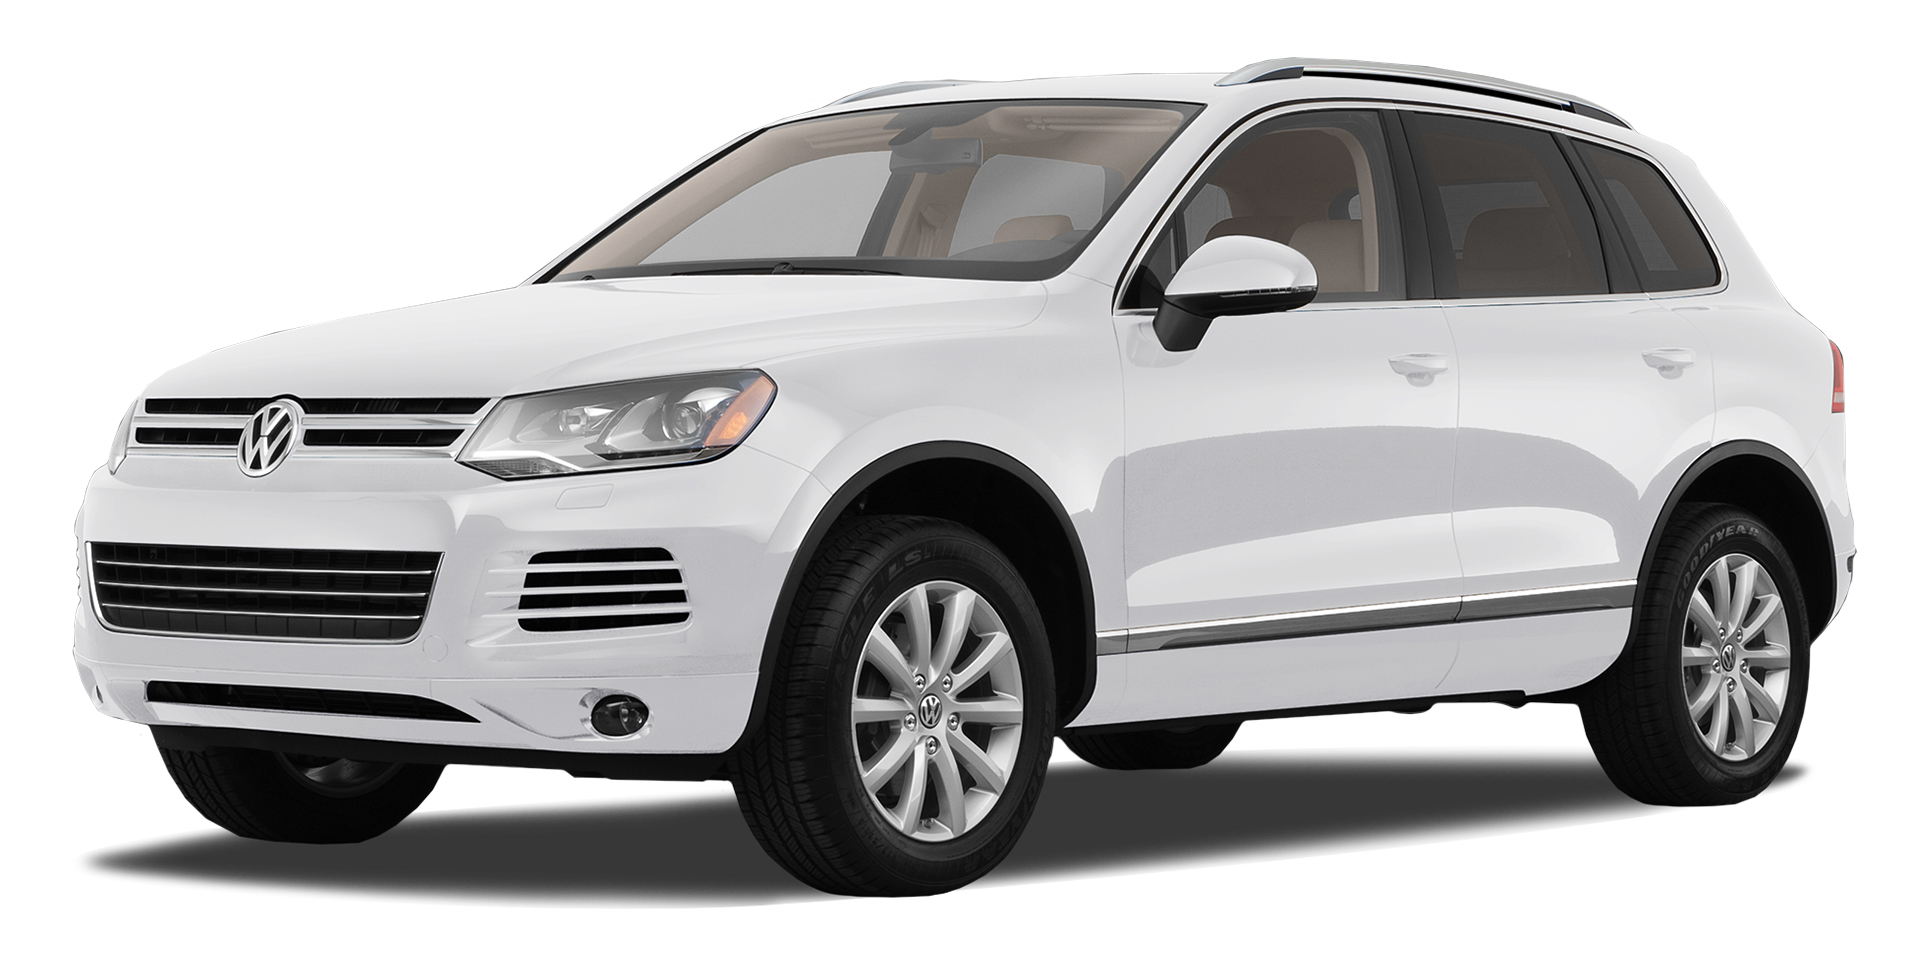 TIPMs and Repairs for 2011 VW Touareg SUVs